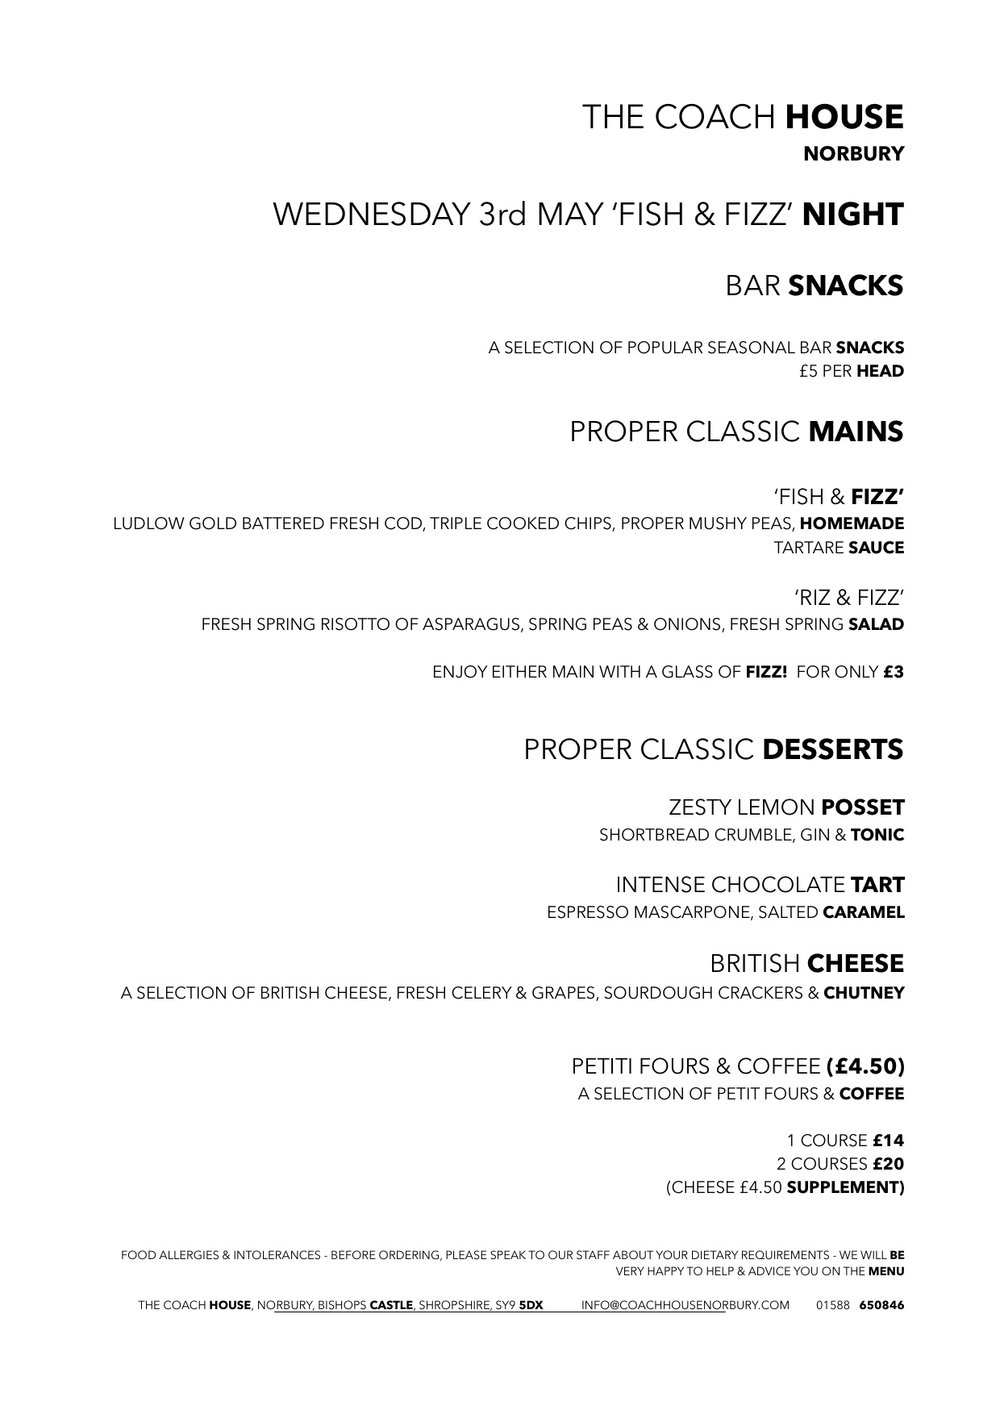 fish and fizz menu